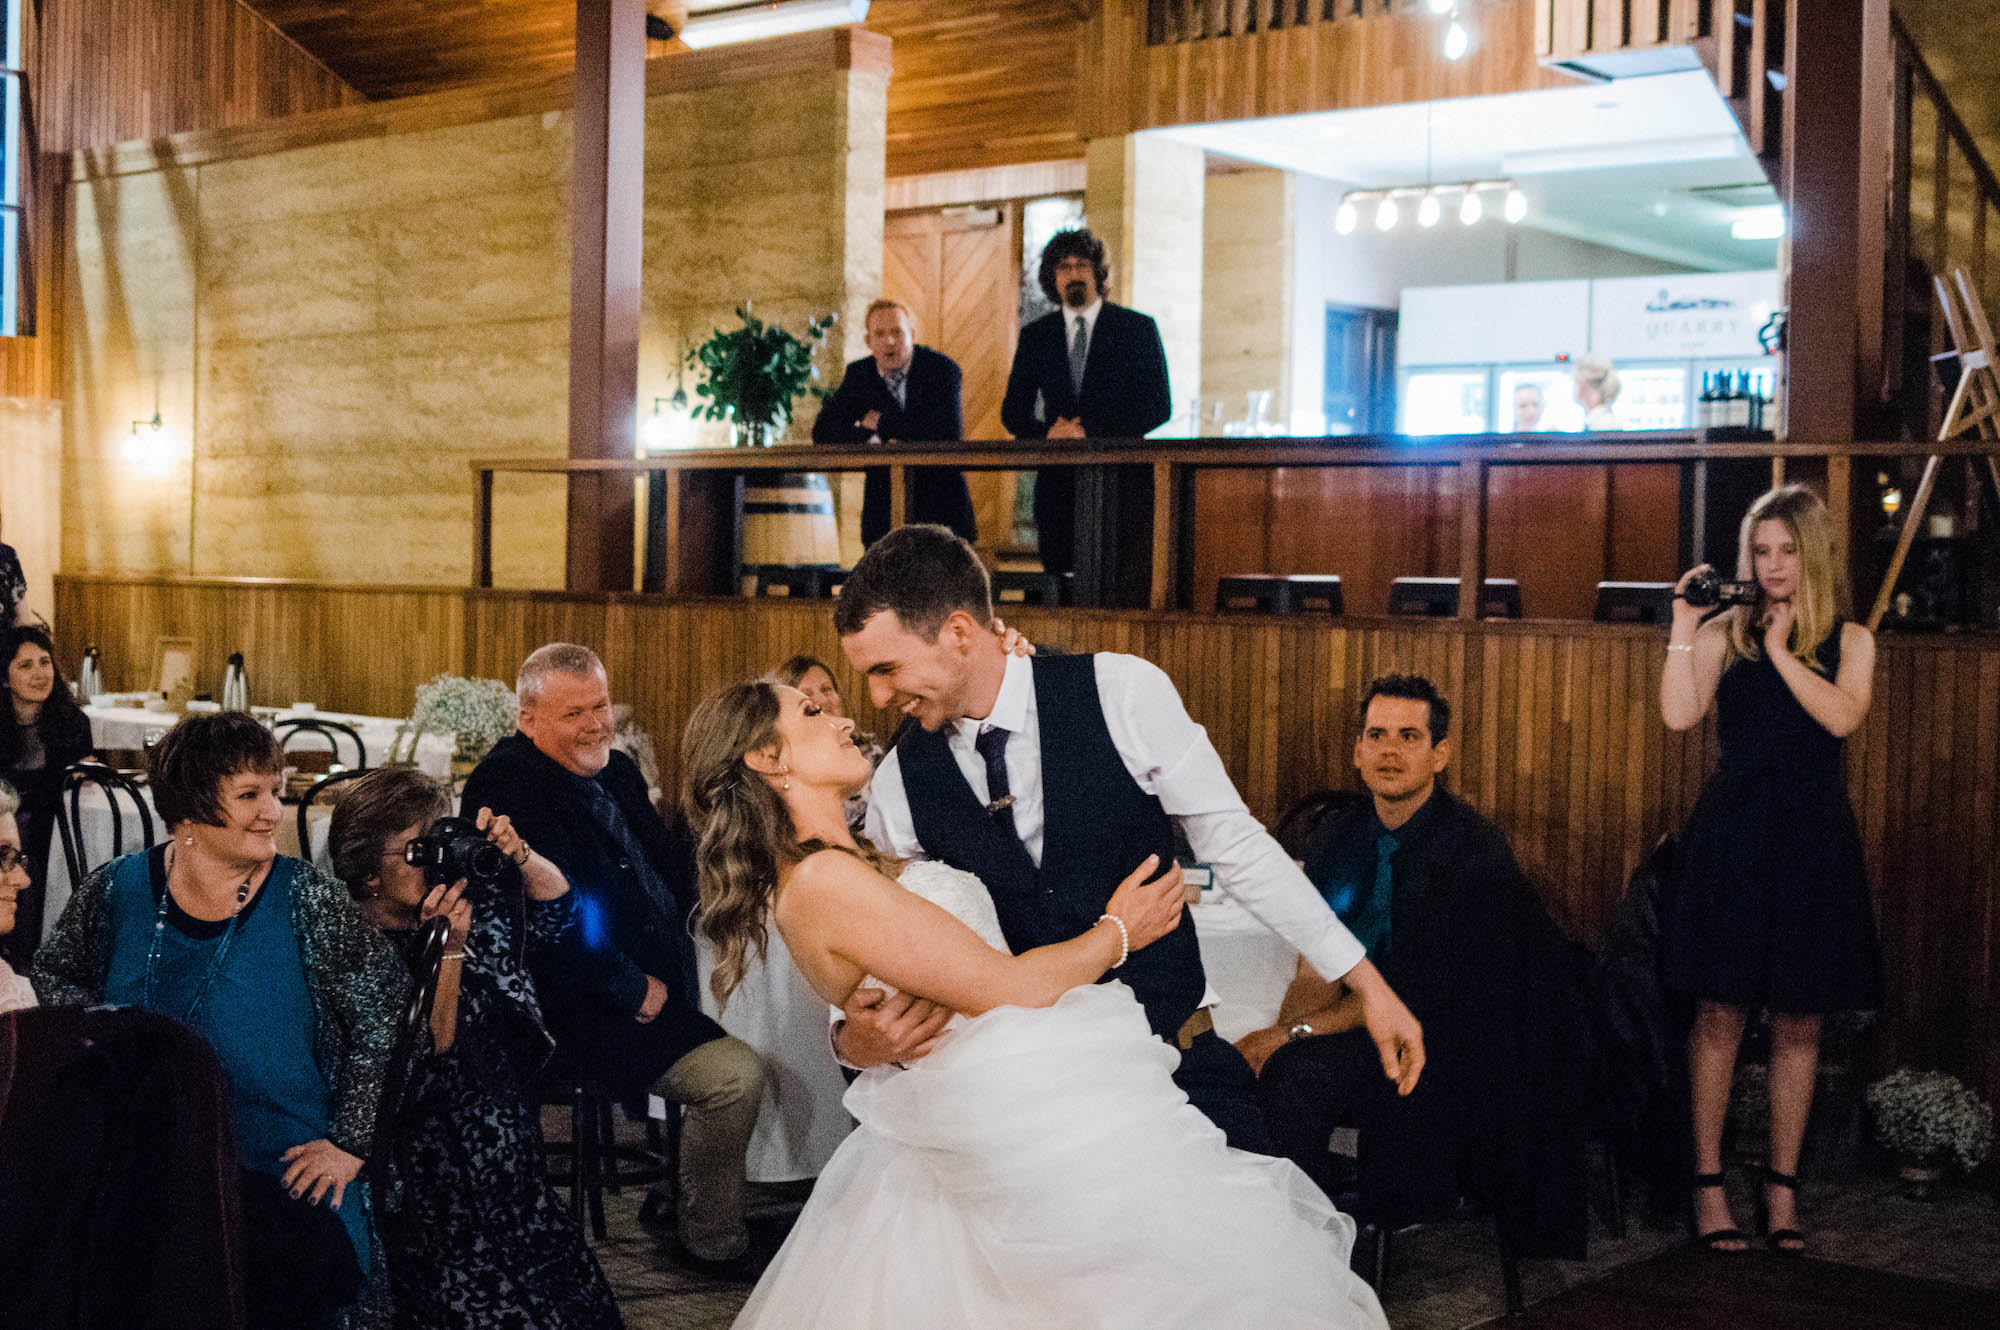 A wedding photo of the groom dipping his bride during their first dance.